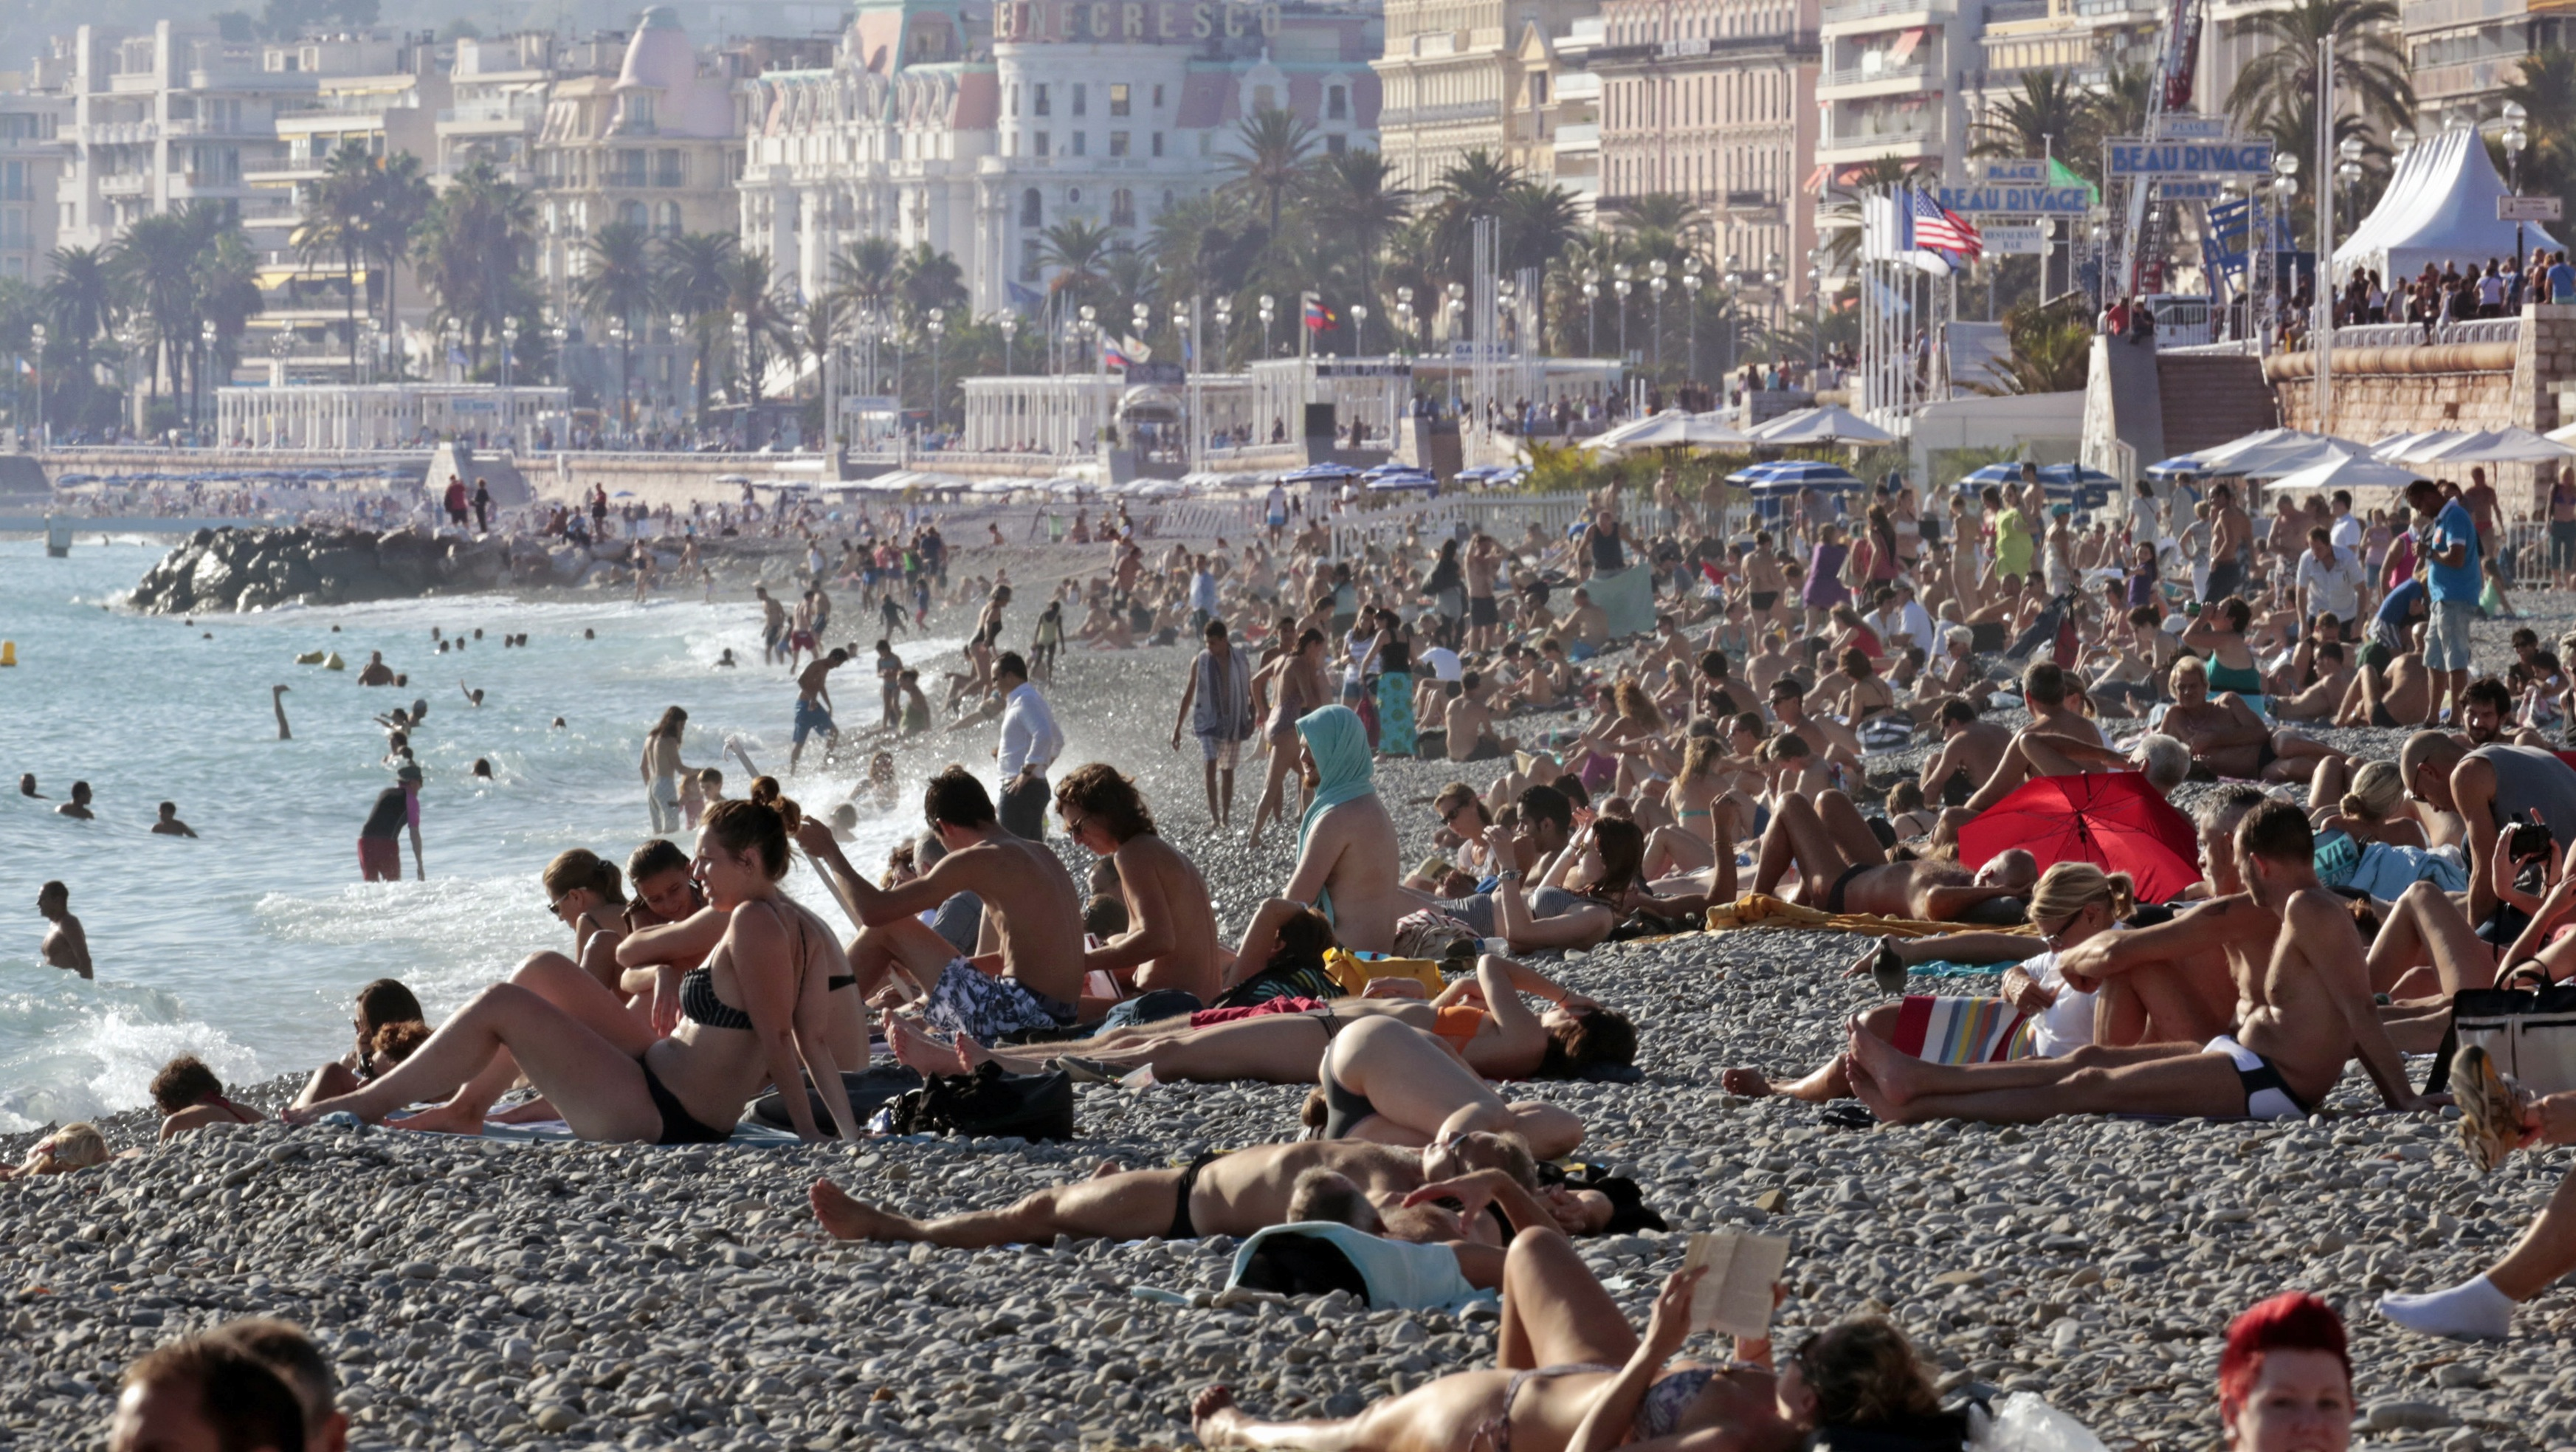 People sunbathe on the beach during an unusually warm and sunny autumn day on the Promenade Des Anglais in Nice, October 18, 2014. REUTERS/Eric Gaillard (FRANCE - Tags: ENVIRONMENT SOCIETY)